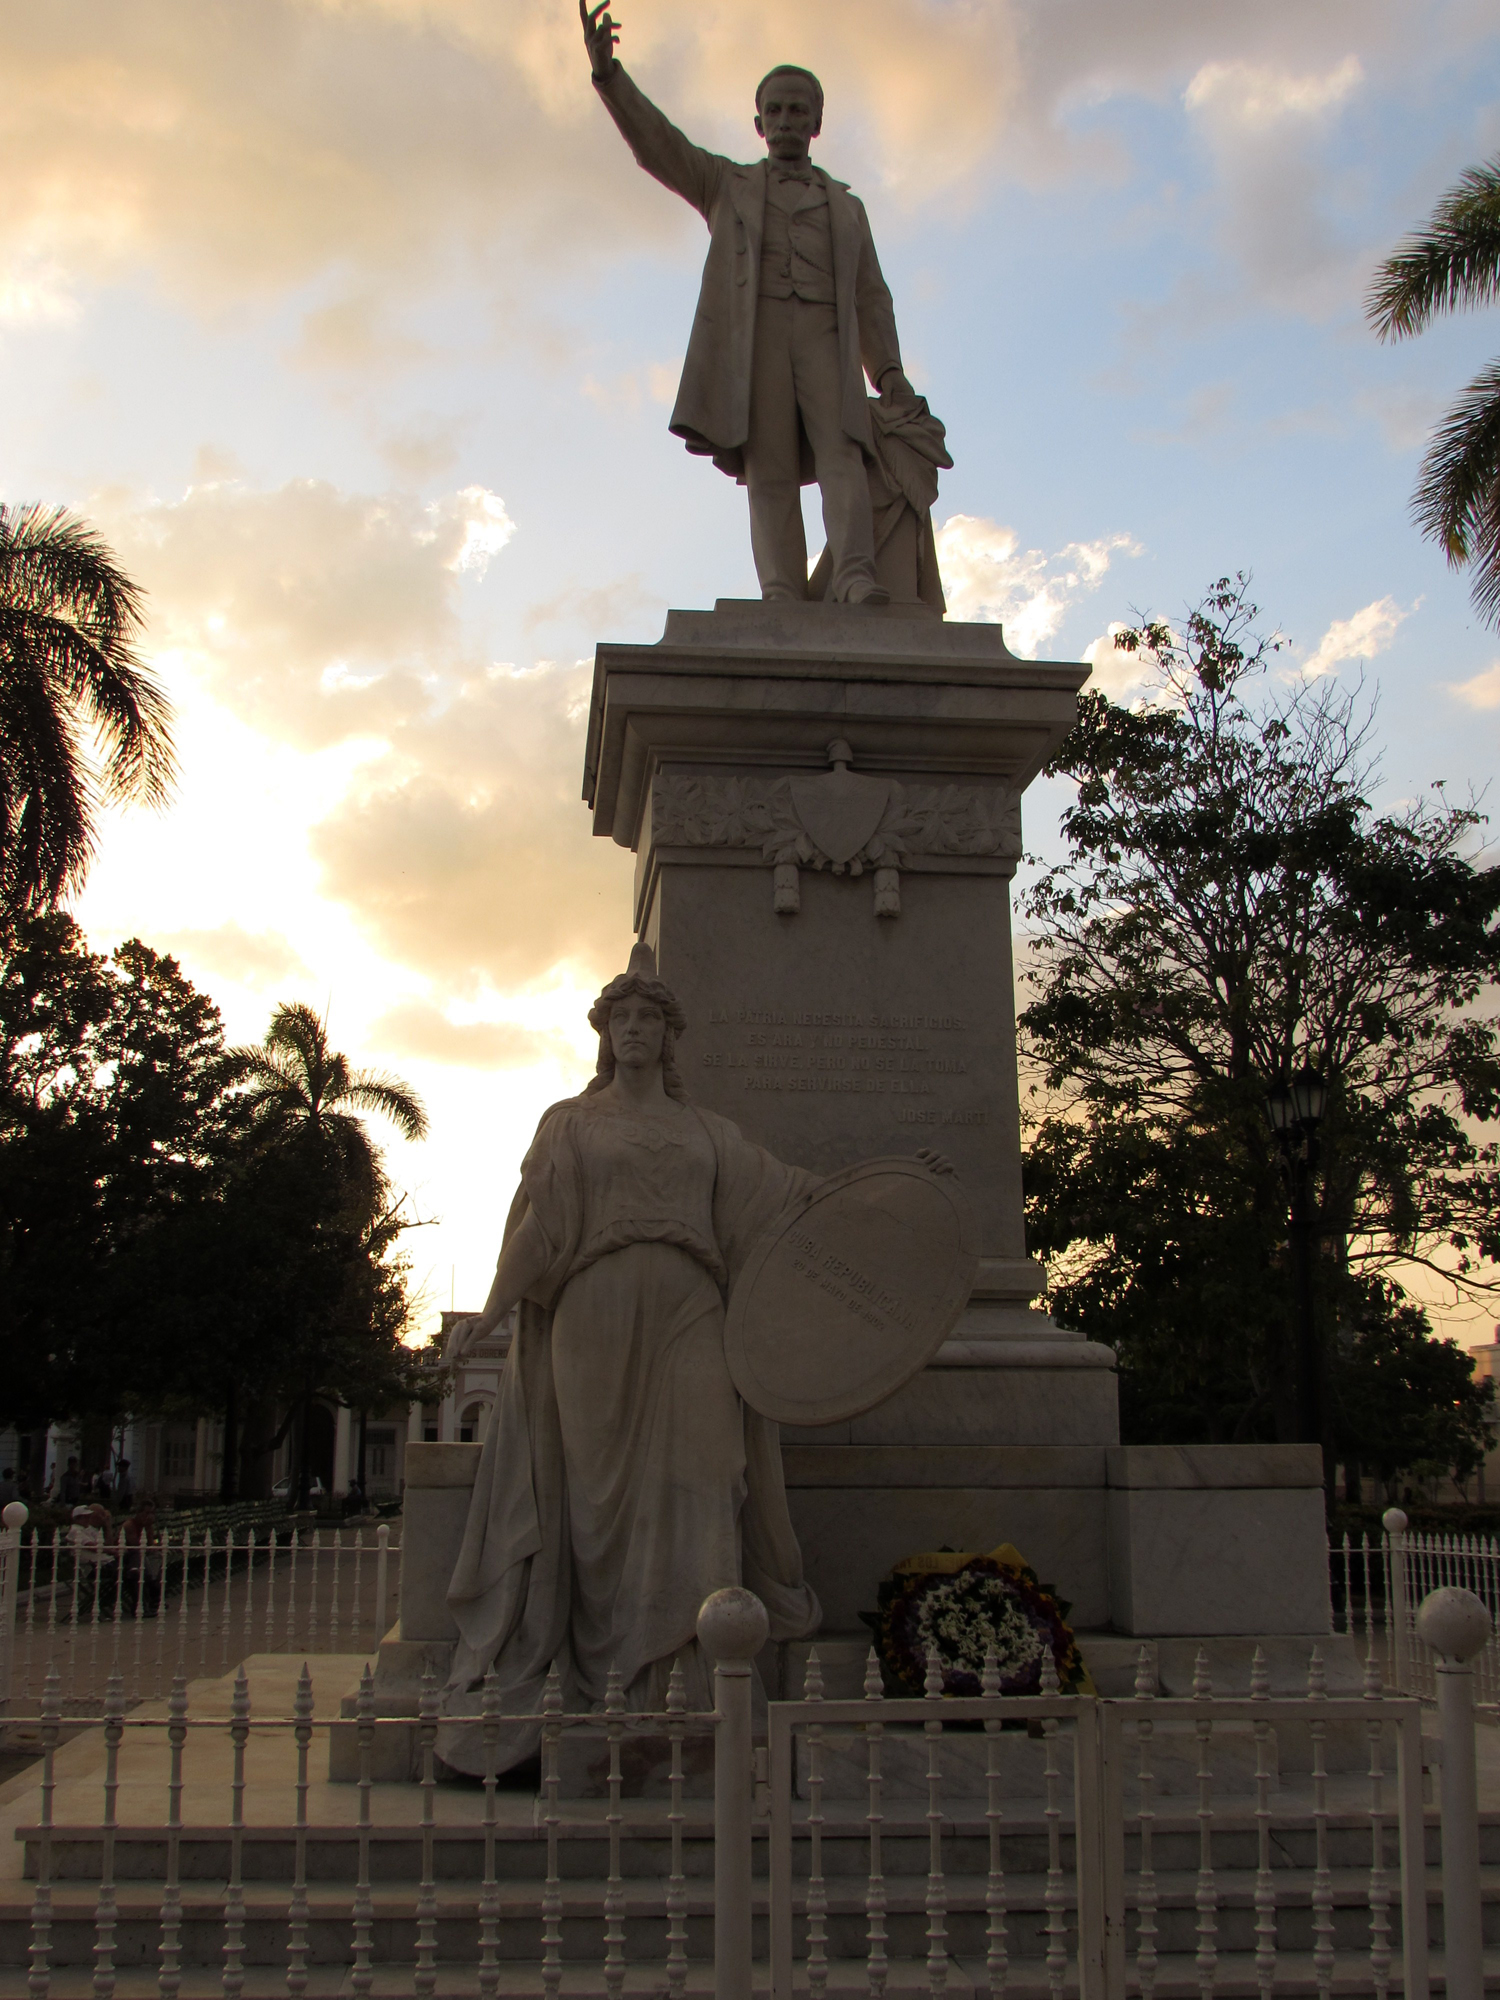 A statue at sunset in Cienfuegos